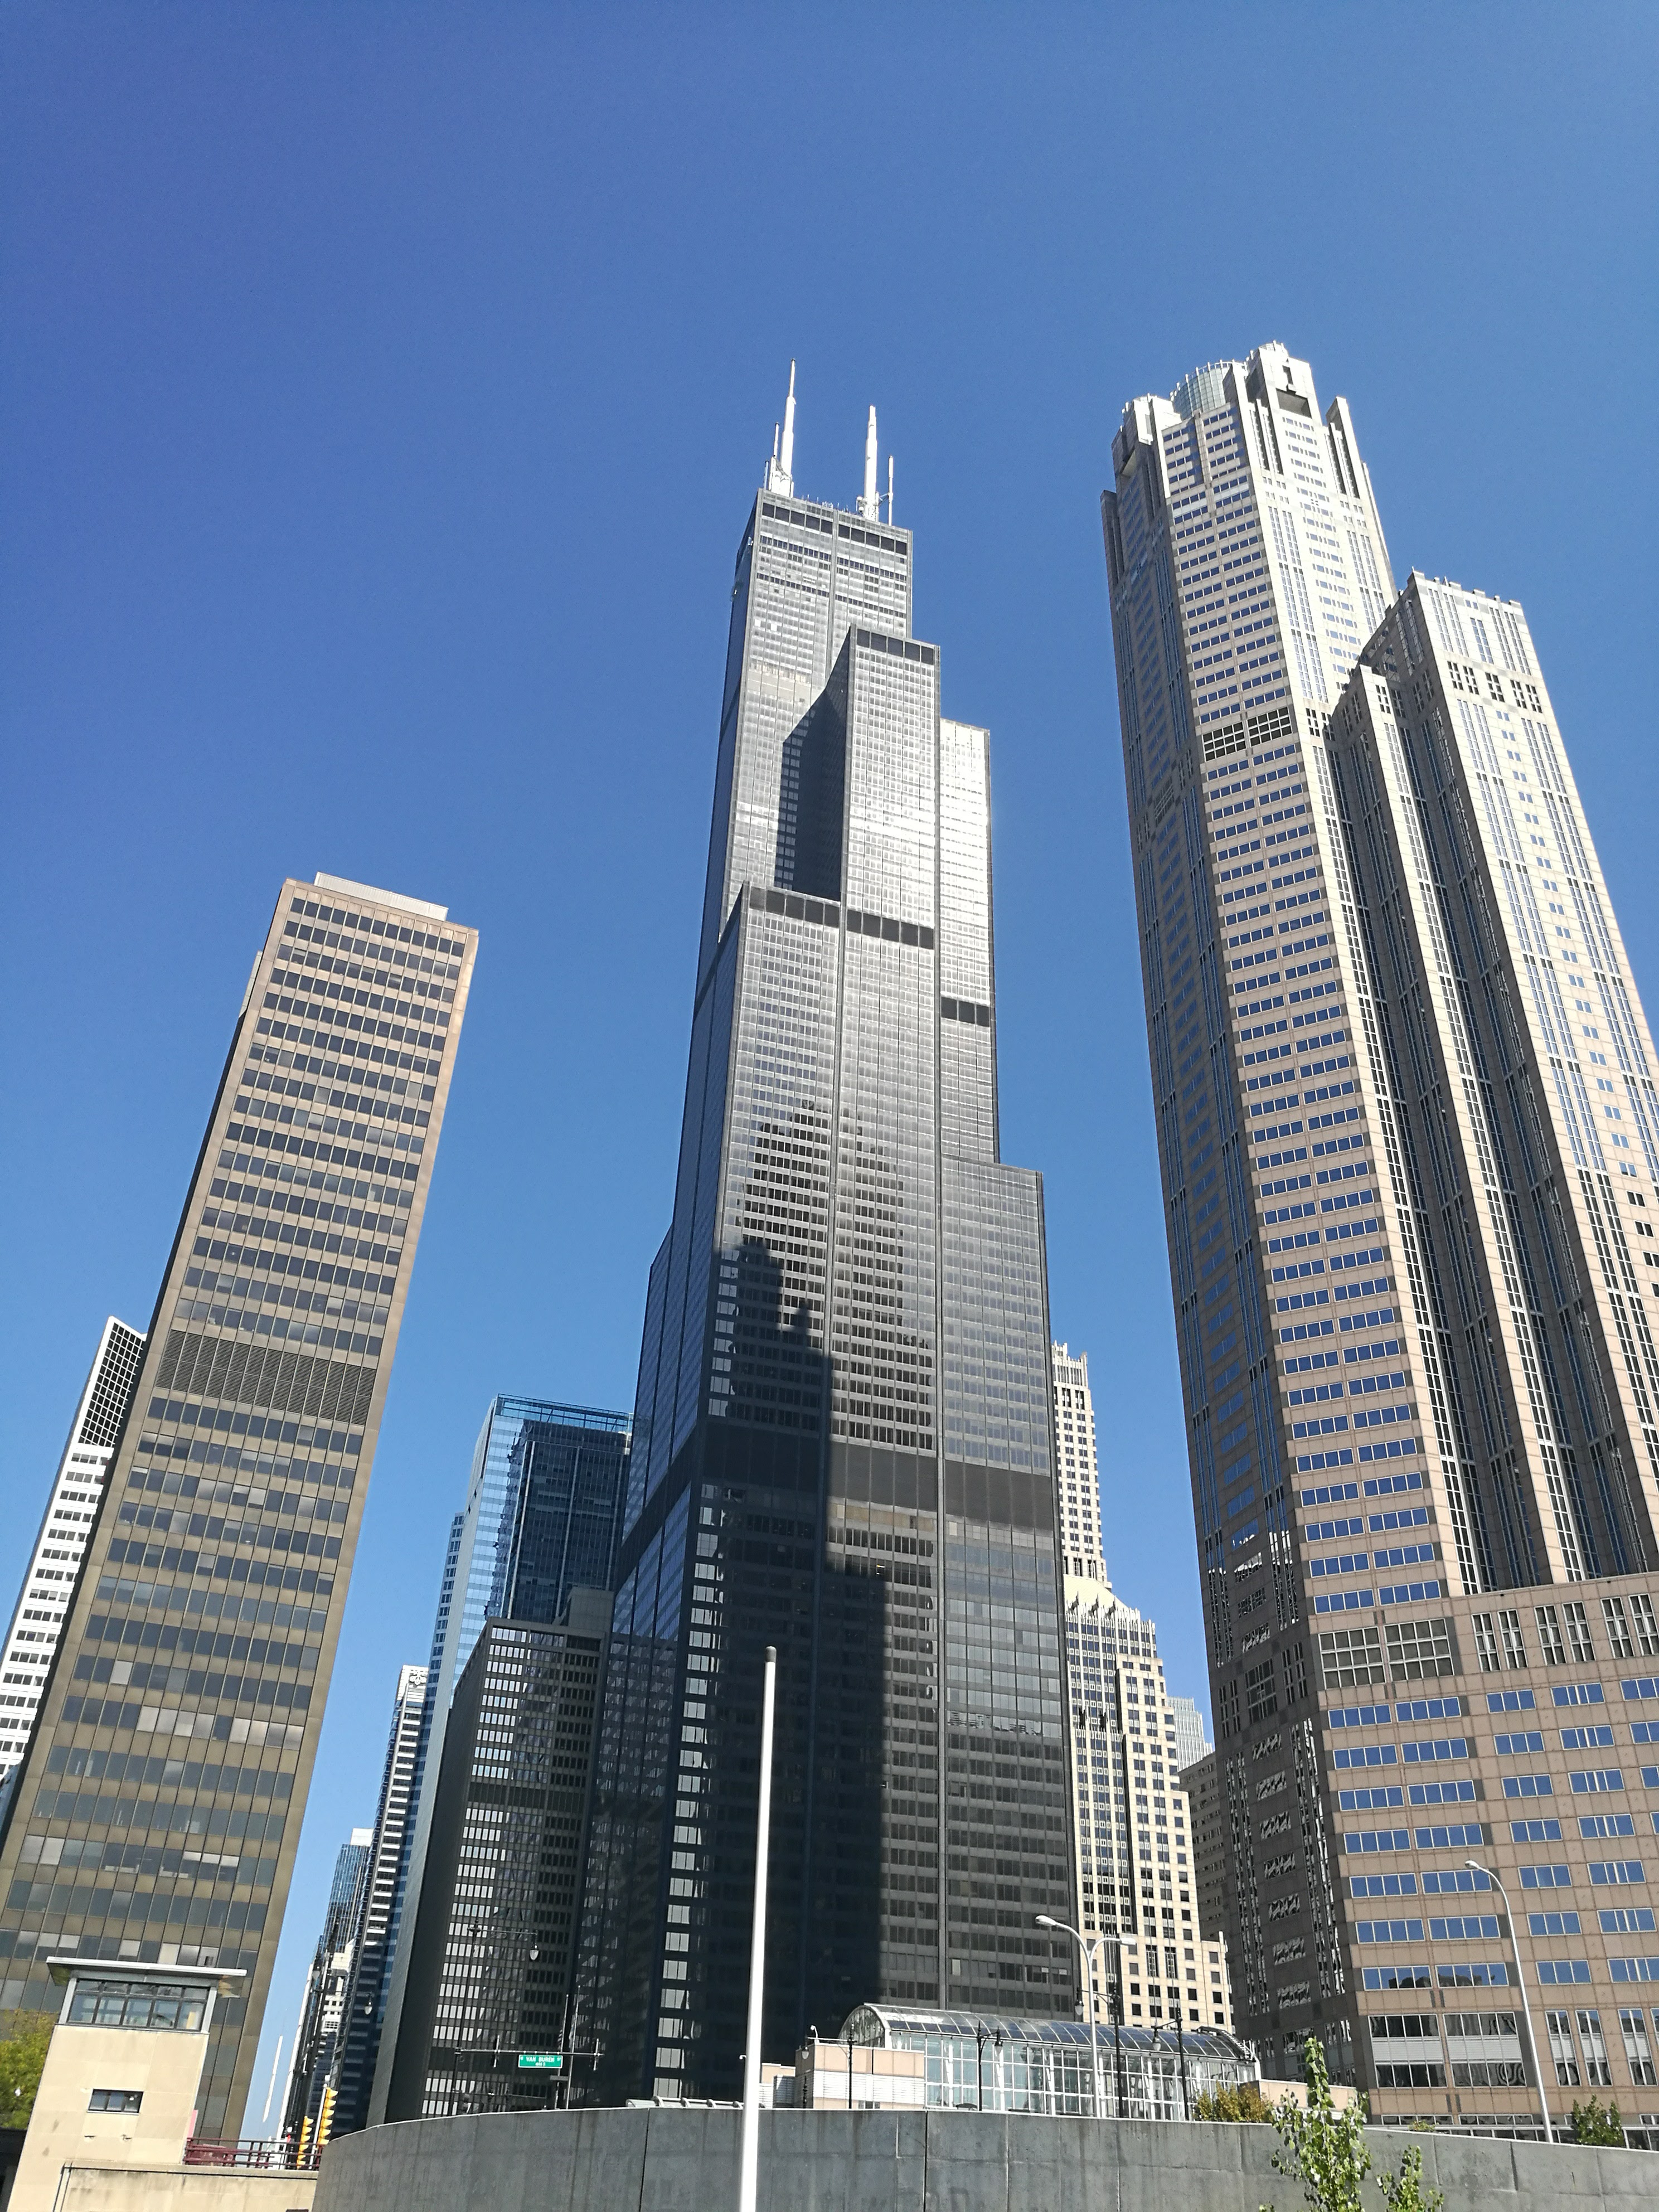 Looking up at some of Chicago's Tallest Buildings